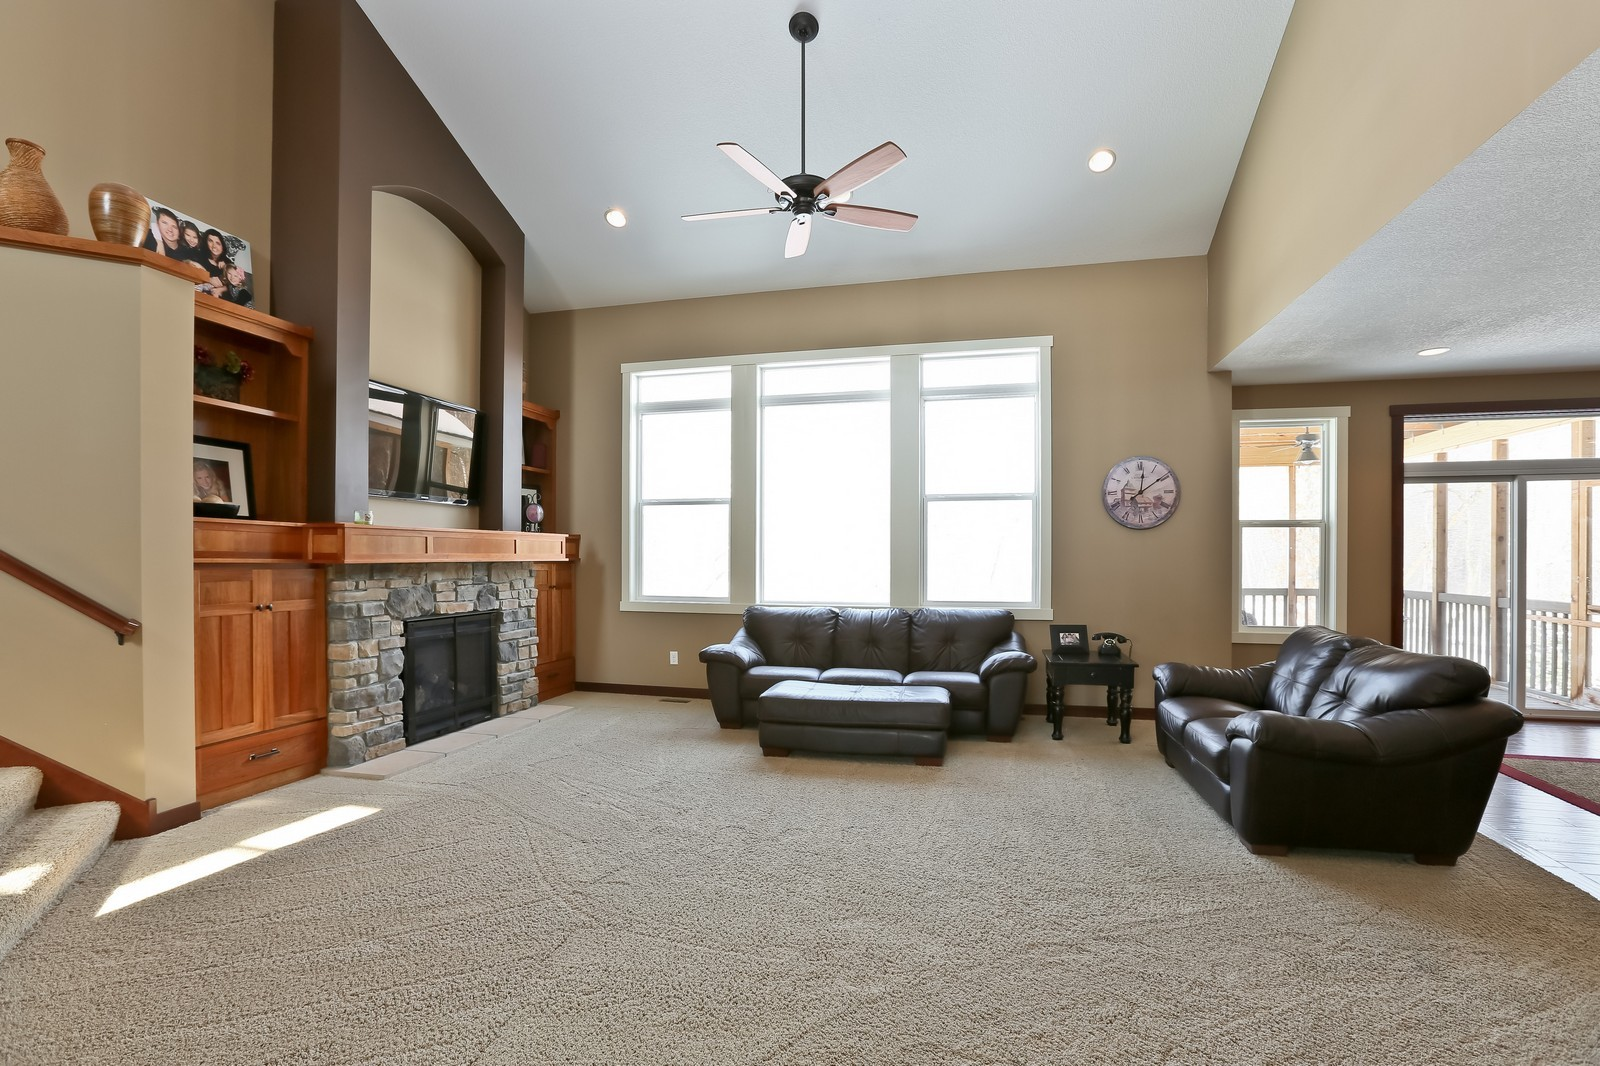 Real Estate Photography - 859 Fox Rd, Lino Lakes, MN, 55014 - Living Room